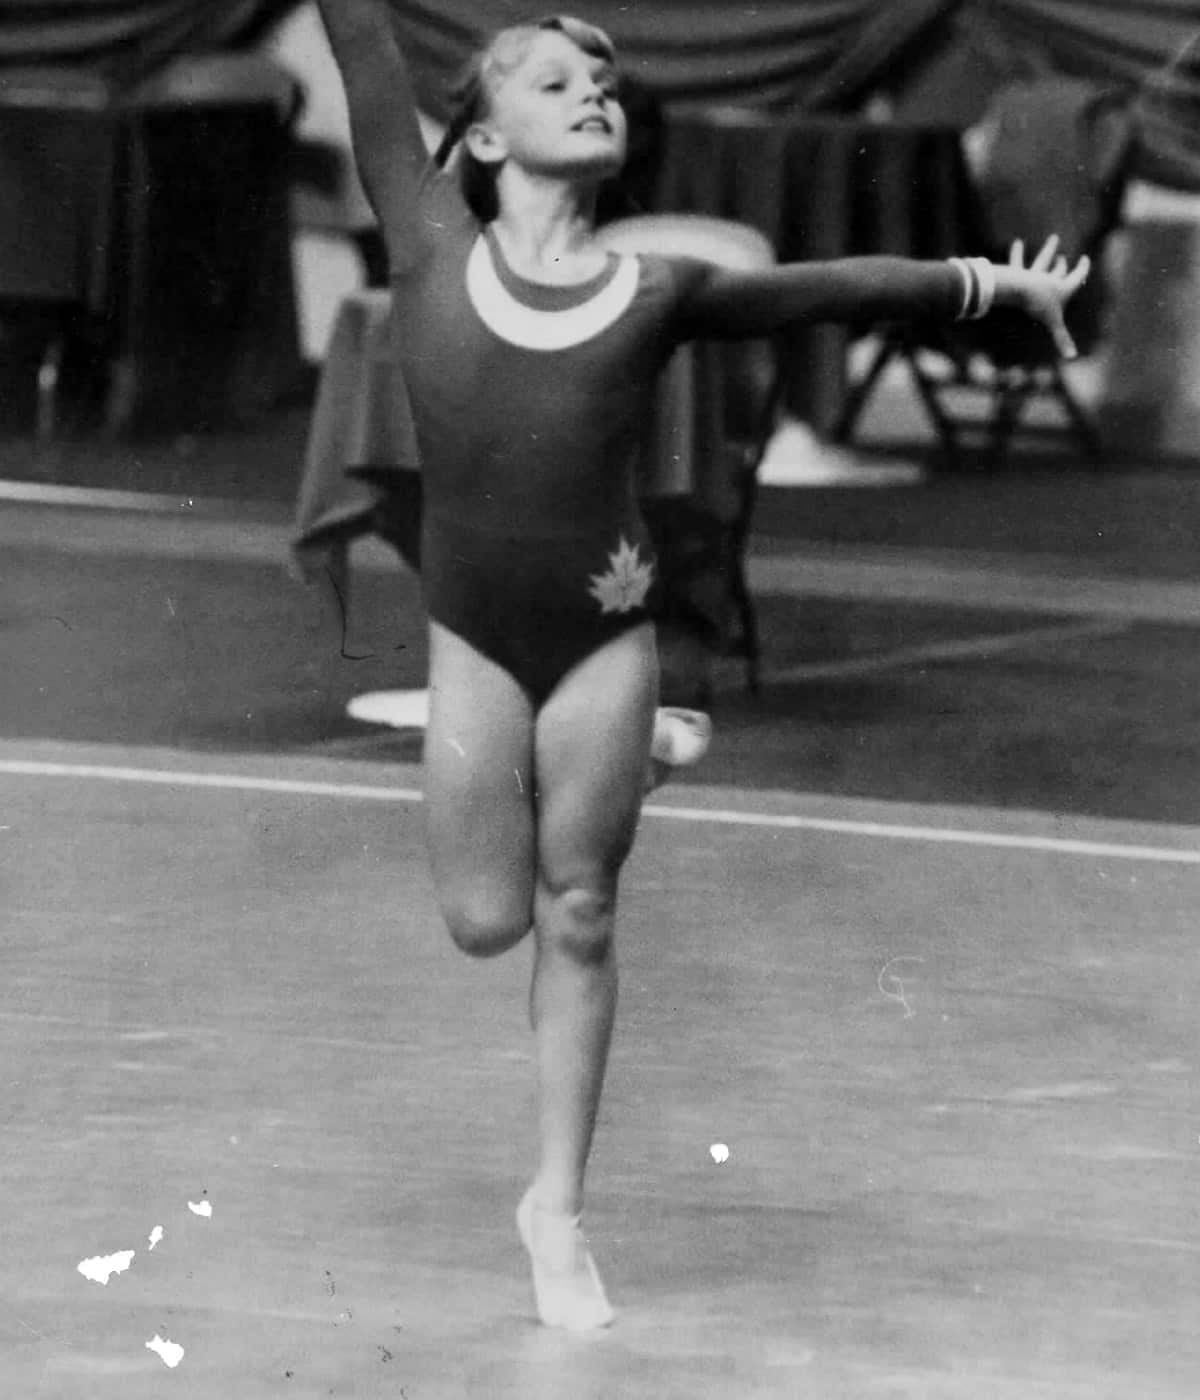 Elfi Schlegel: Nadia Comaneci and her Olympic perfection changed my life